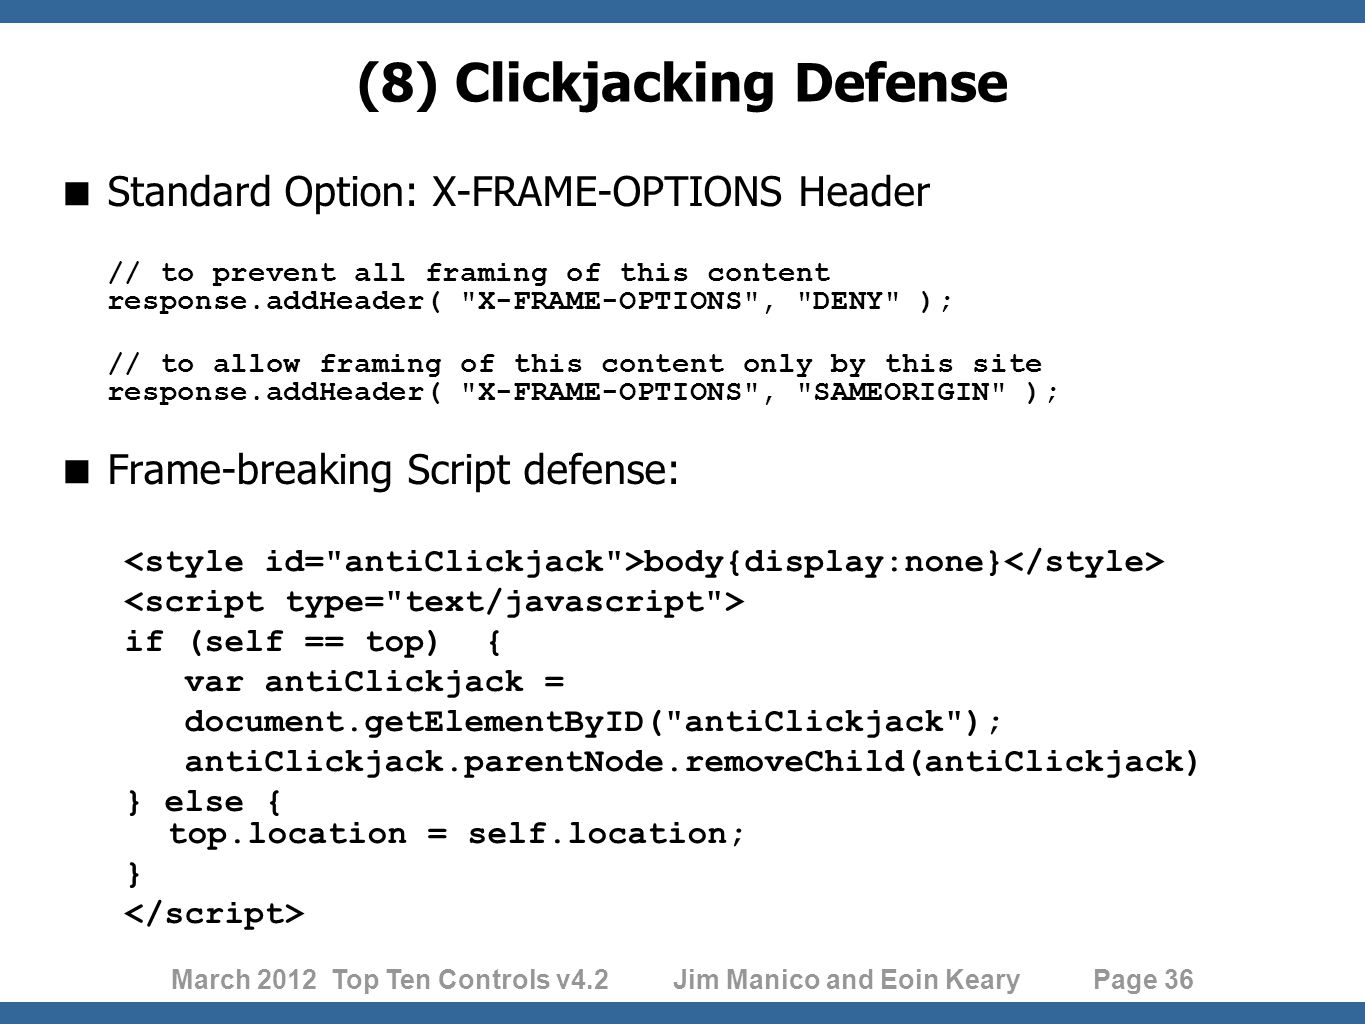 March 2012 Top Ten Controls v4.2 Jim Manico and Eoin Keary Page 36 (8) Clickjacking Defense  Standard Option: X-FRAME-OPTIONS Header // to prevent all framing of this content response.addHeader( X-FRAME-OPTIONS , DENY ); // to allow framing of this content only by this site response.addHeader( X-FRAME-OPTIONS , SAMEORIGIN );  Frame-breaking Script defense: body{display:none} if (self == top) { var antiClickjack = document.getElementByID( antiClickjack ); antiClickjack.parentNode.removeChild(antiClickjack) } else { top.location = self.location; }